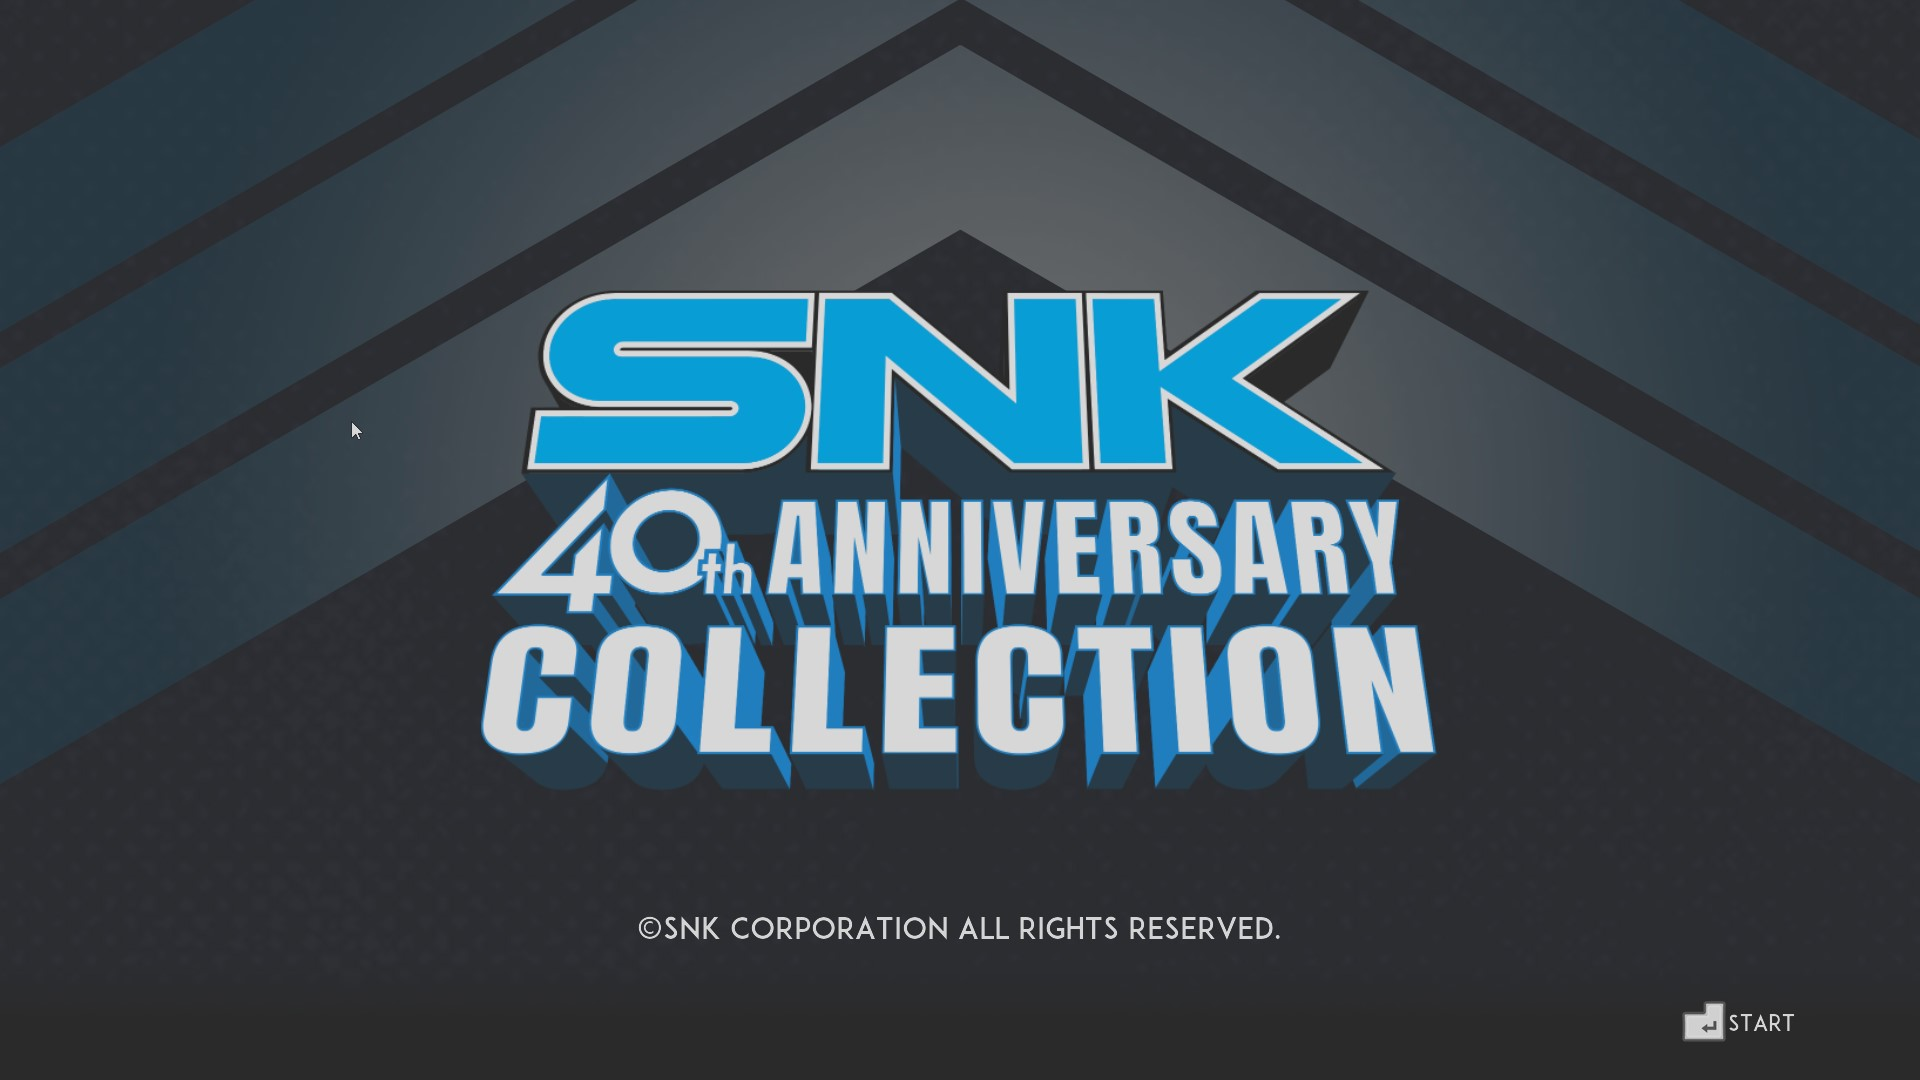 AkinNahtanoj: SNK 40th Anniversary Collection: Athena [Console] (PC) 23,300 points on 2020-08-23 07:03:52